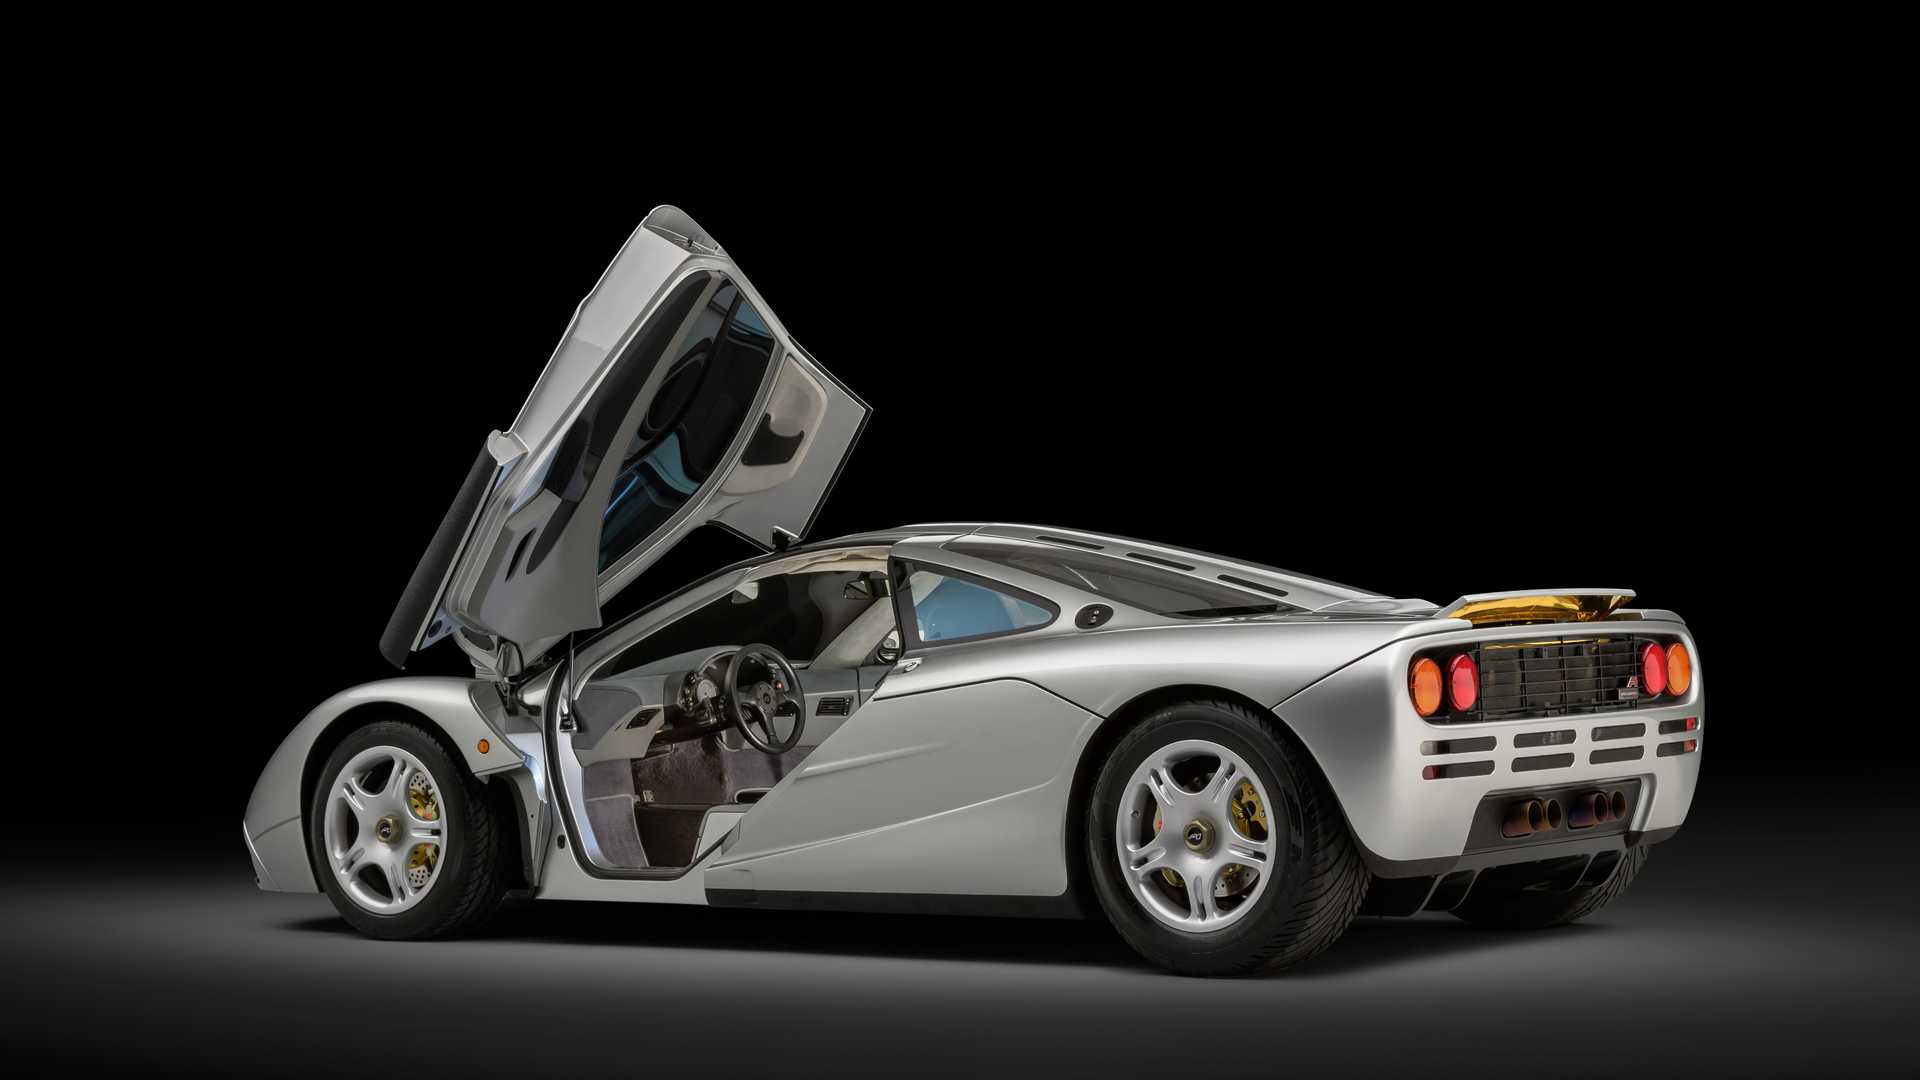 mclaren-f1-chassis-no-63-3